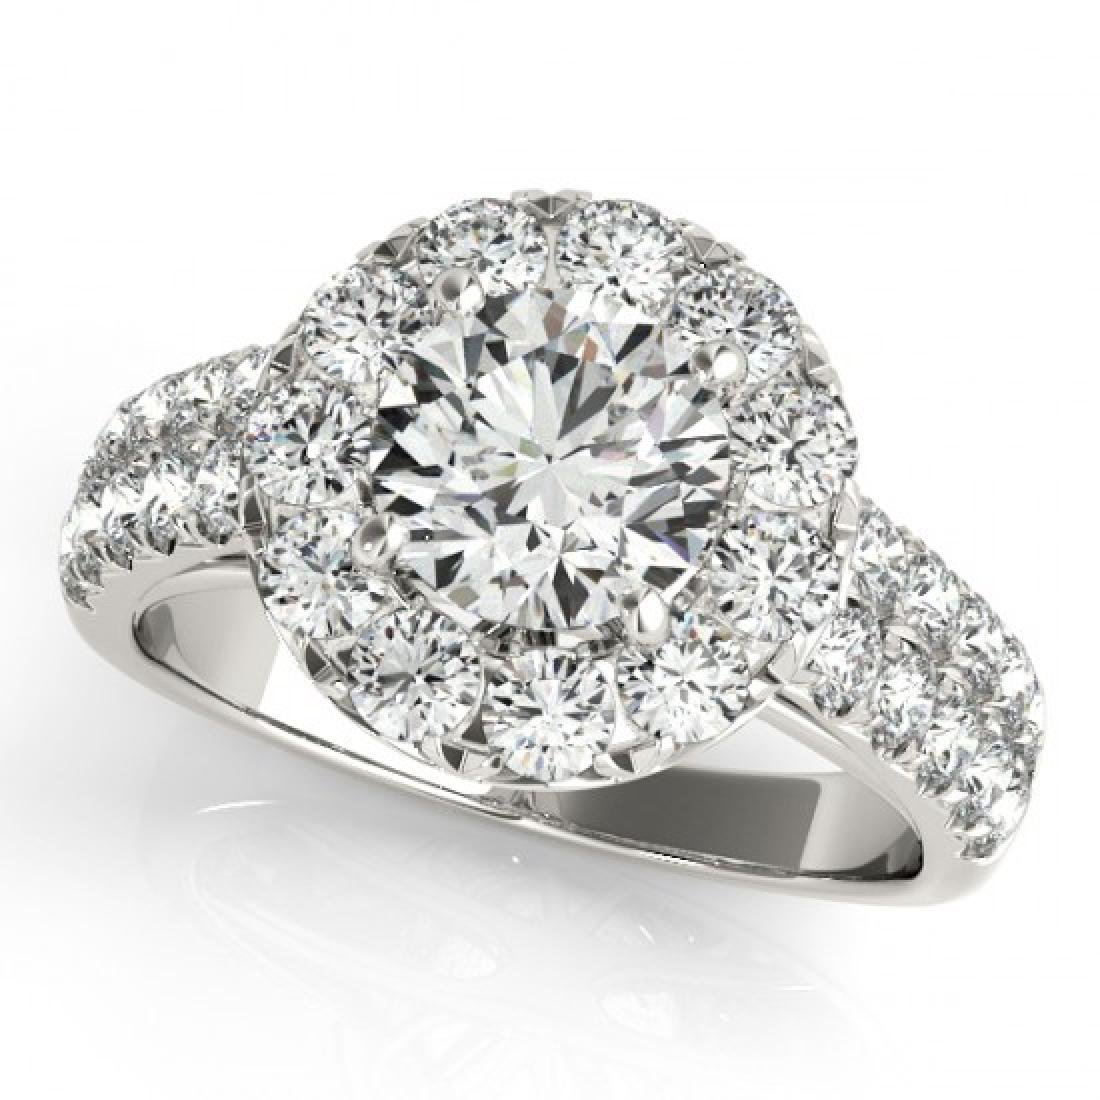 1.52 CTW Certified VS/SI Diamond Solitaire Halo Ring